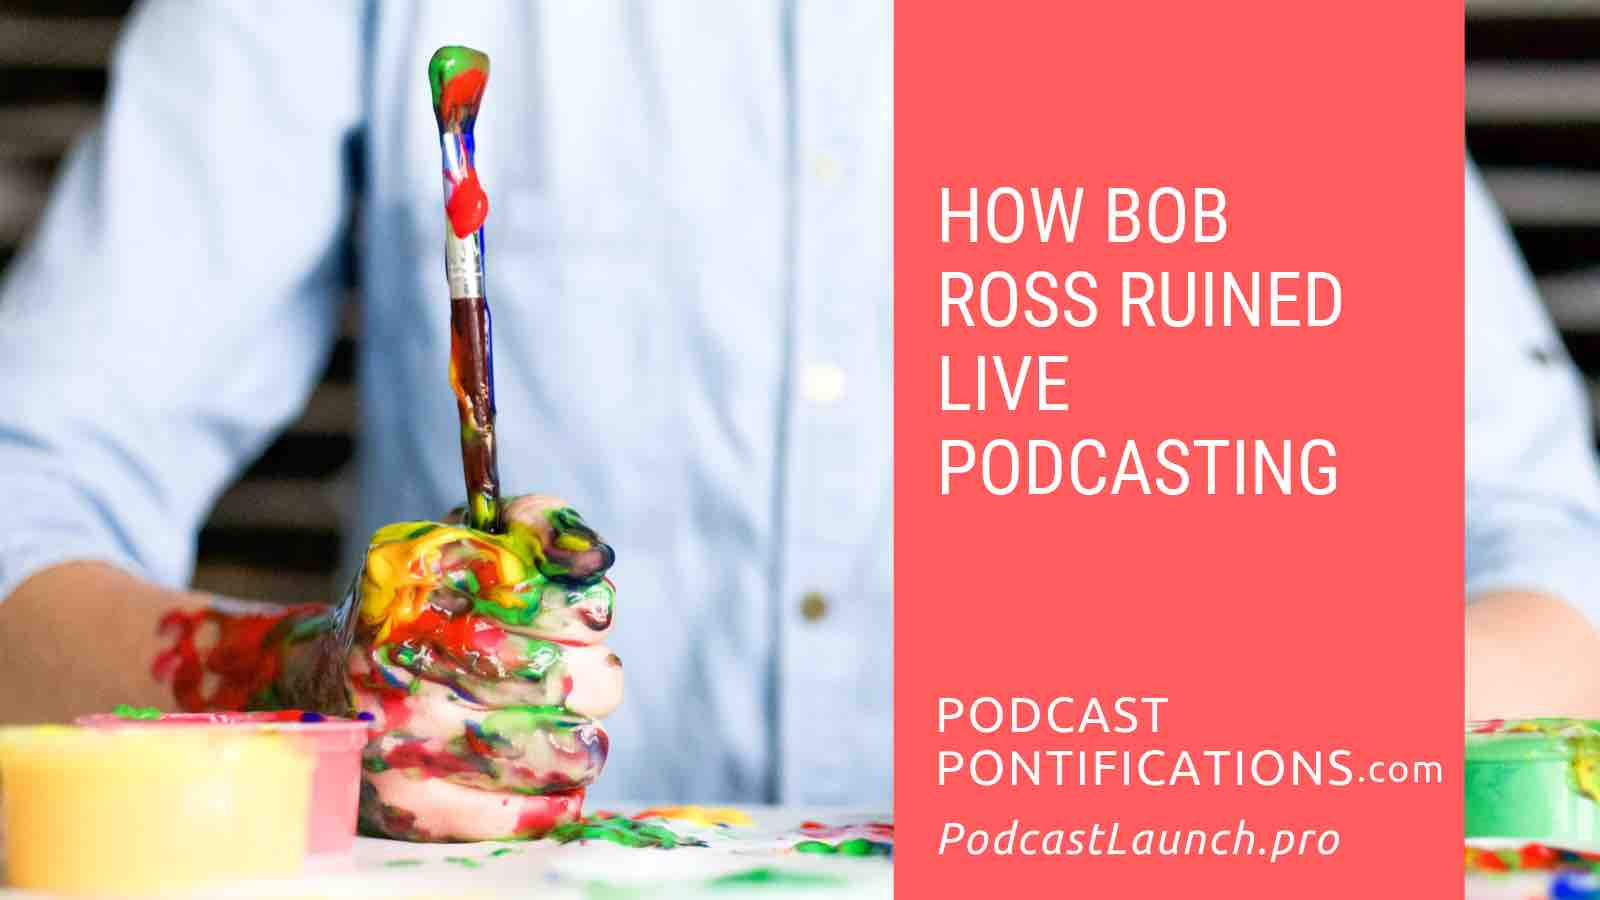 How Bob Ross Ruined Live Podcasting